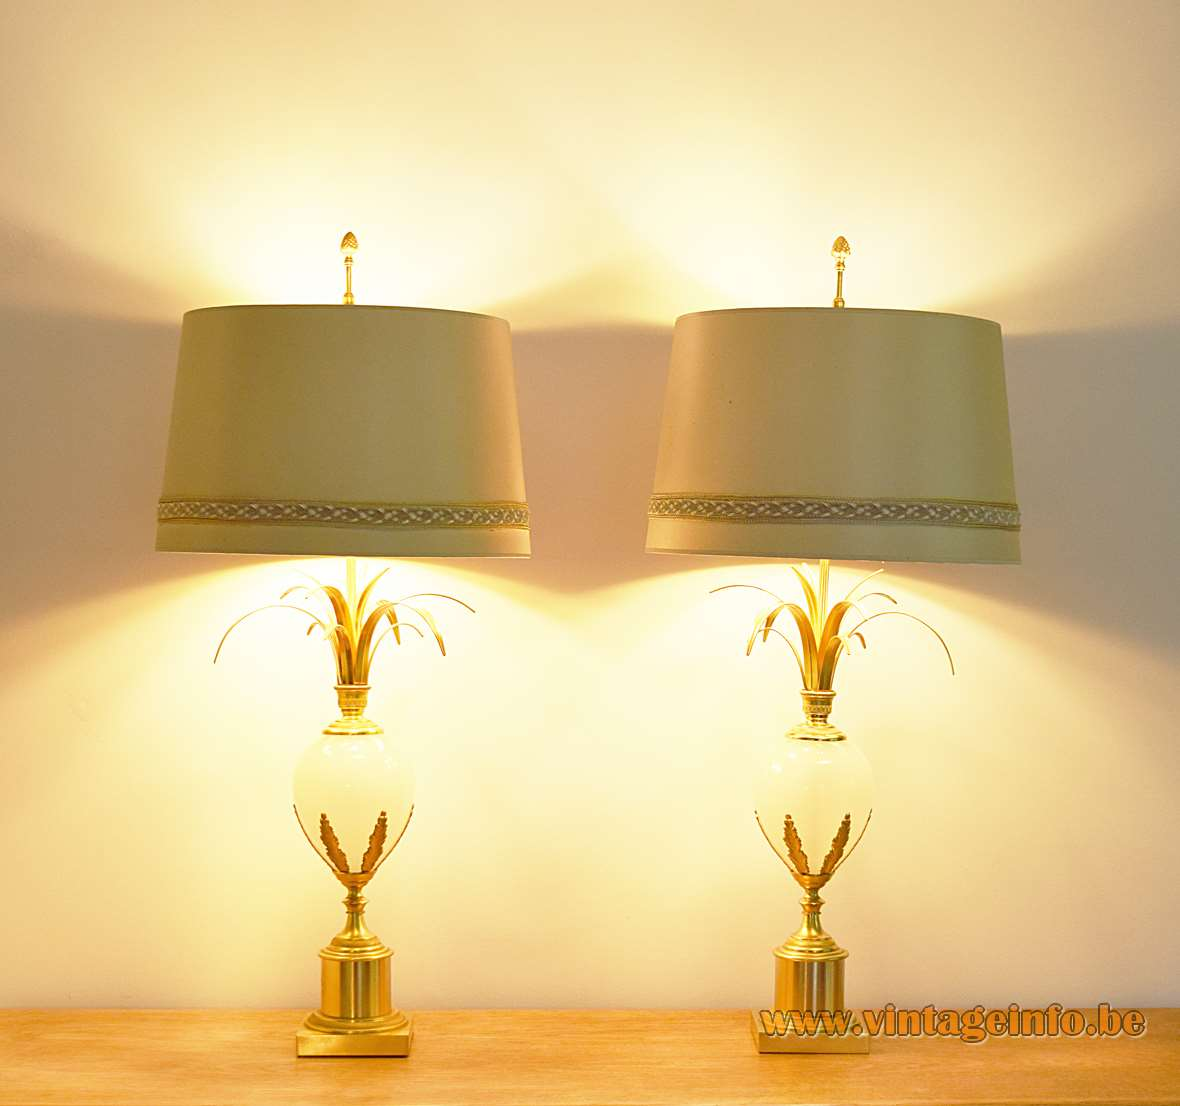 Boulanger Ostrich Egg Table Lamps, 1960s, 1970s, brass, opal glass, Belgium, palm, reed lamps